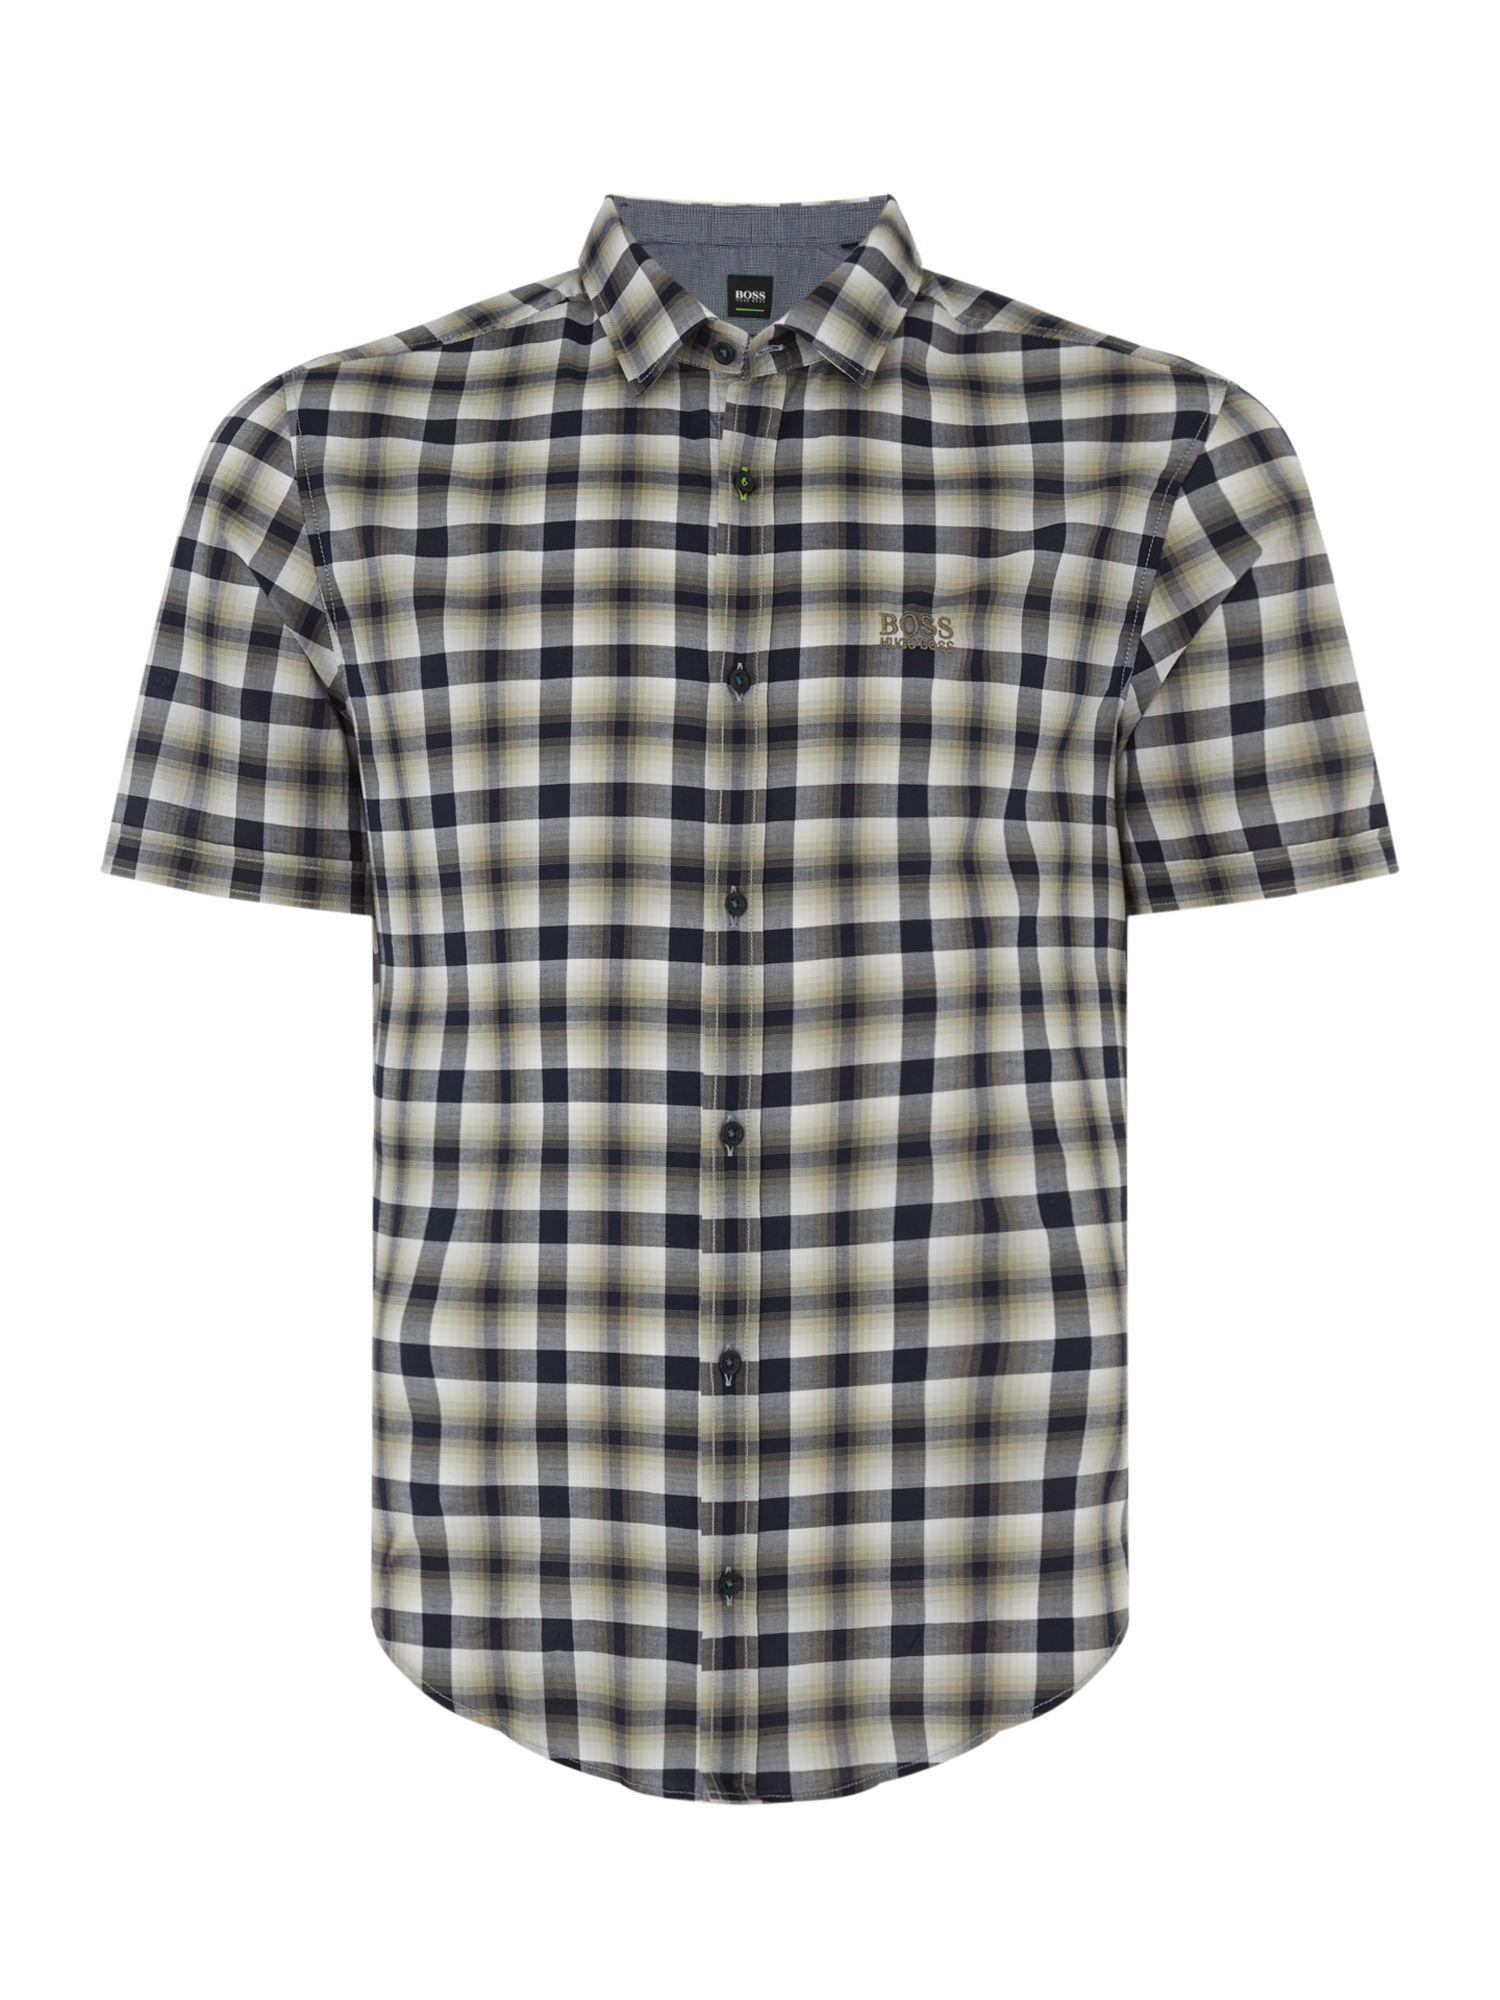 26b23e2d3 Lyst - Boss Men's Barn-r Short Sleeve Check Shirt for Men